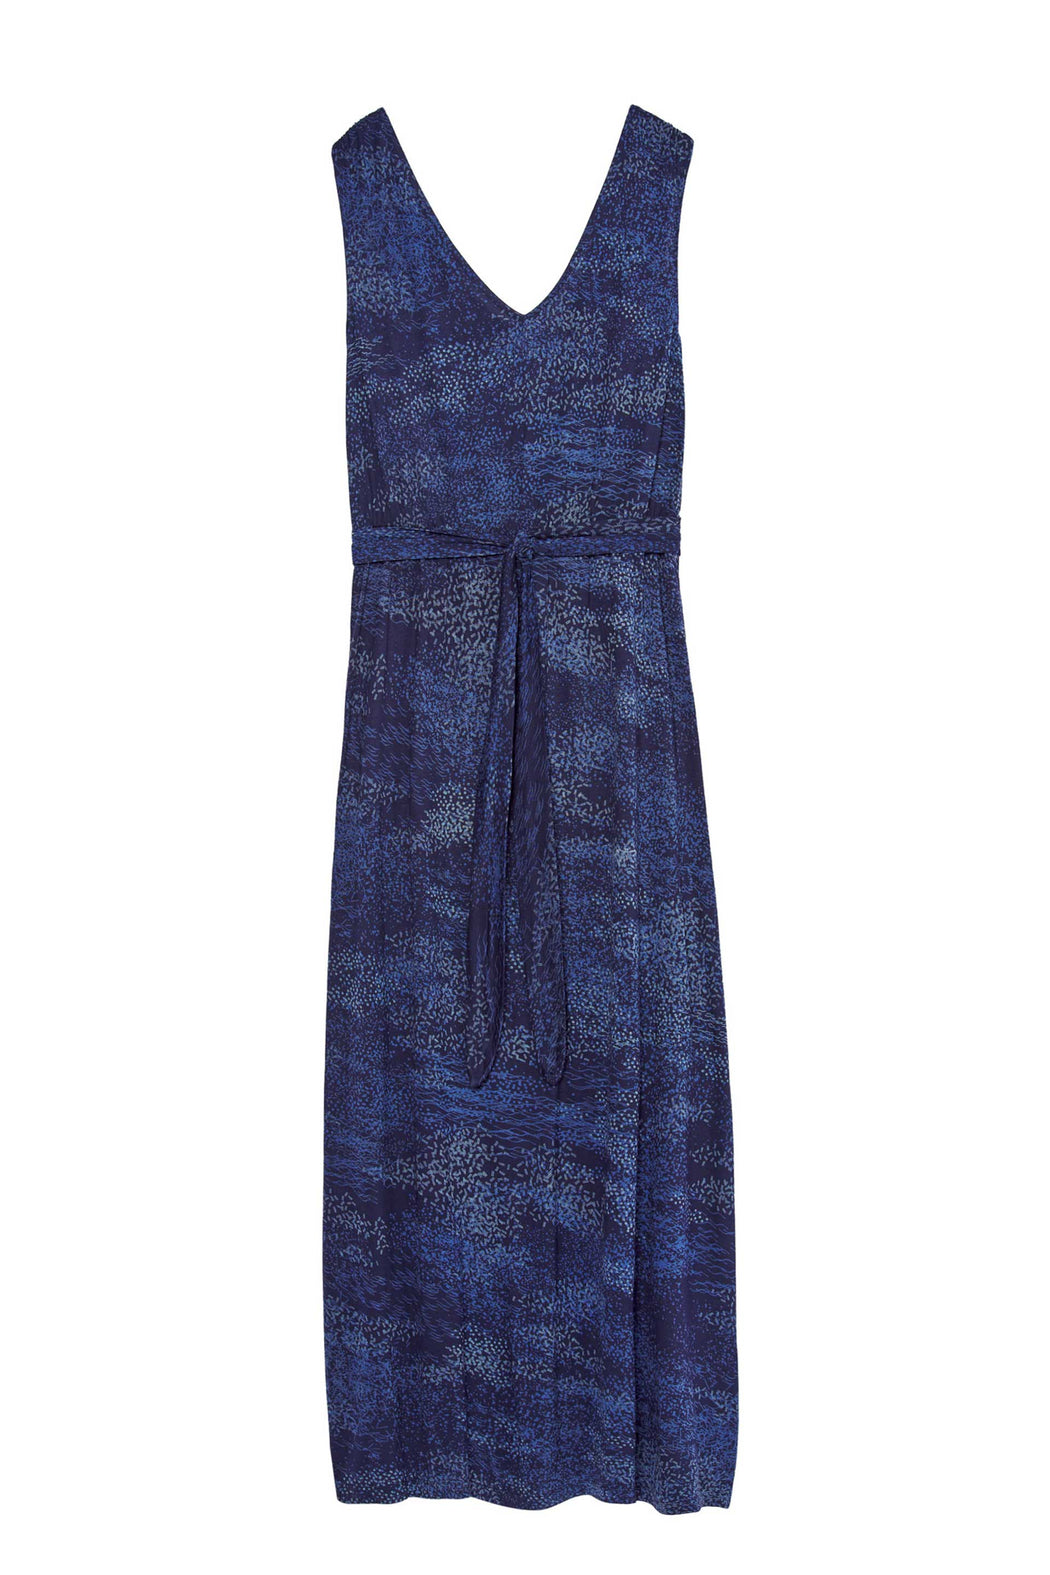 JARE Dress B6 spray print blue